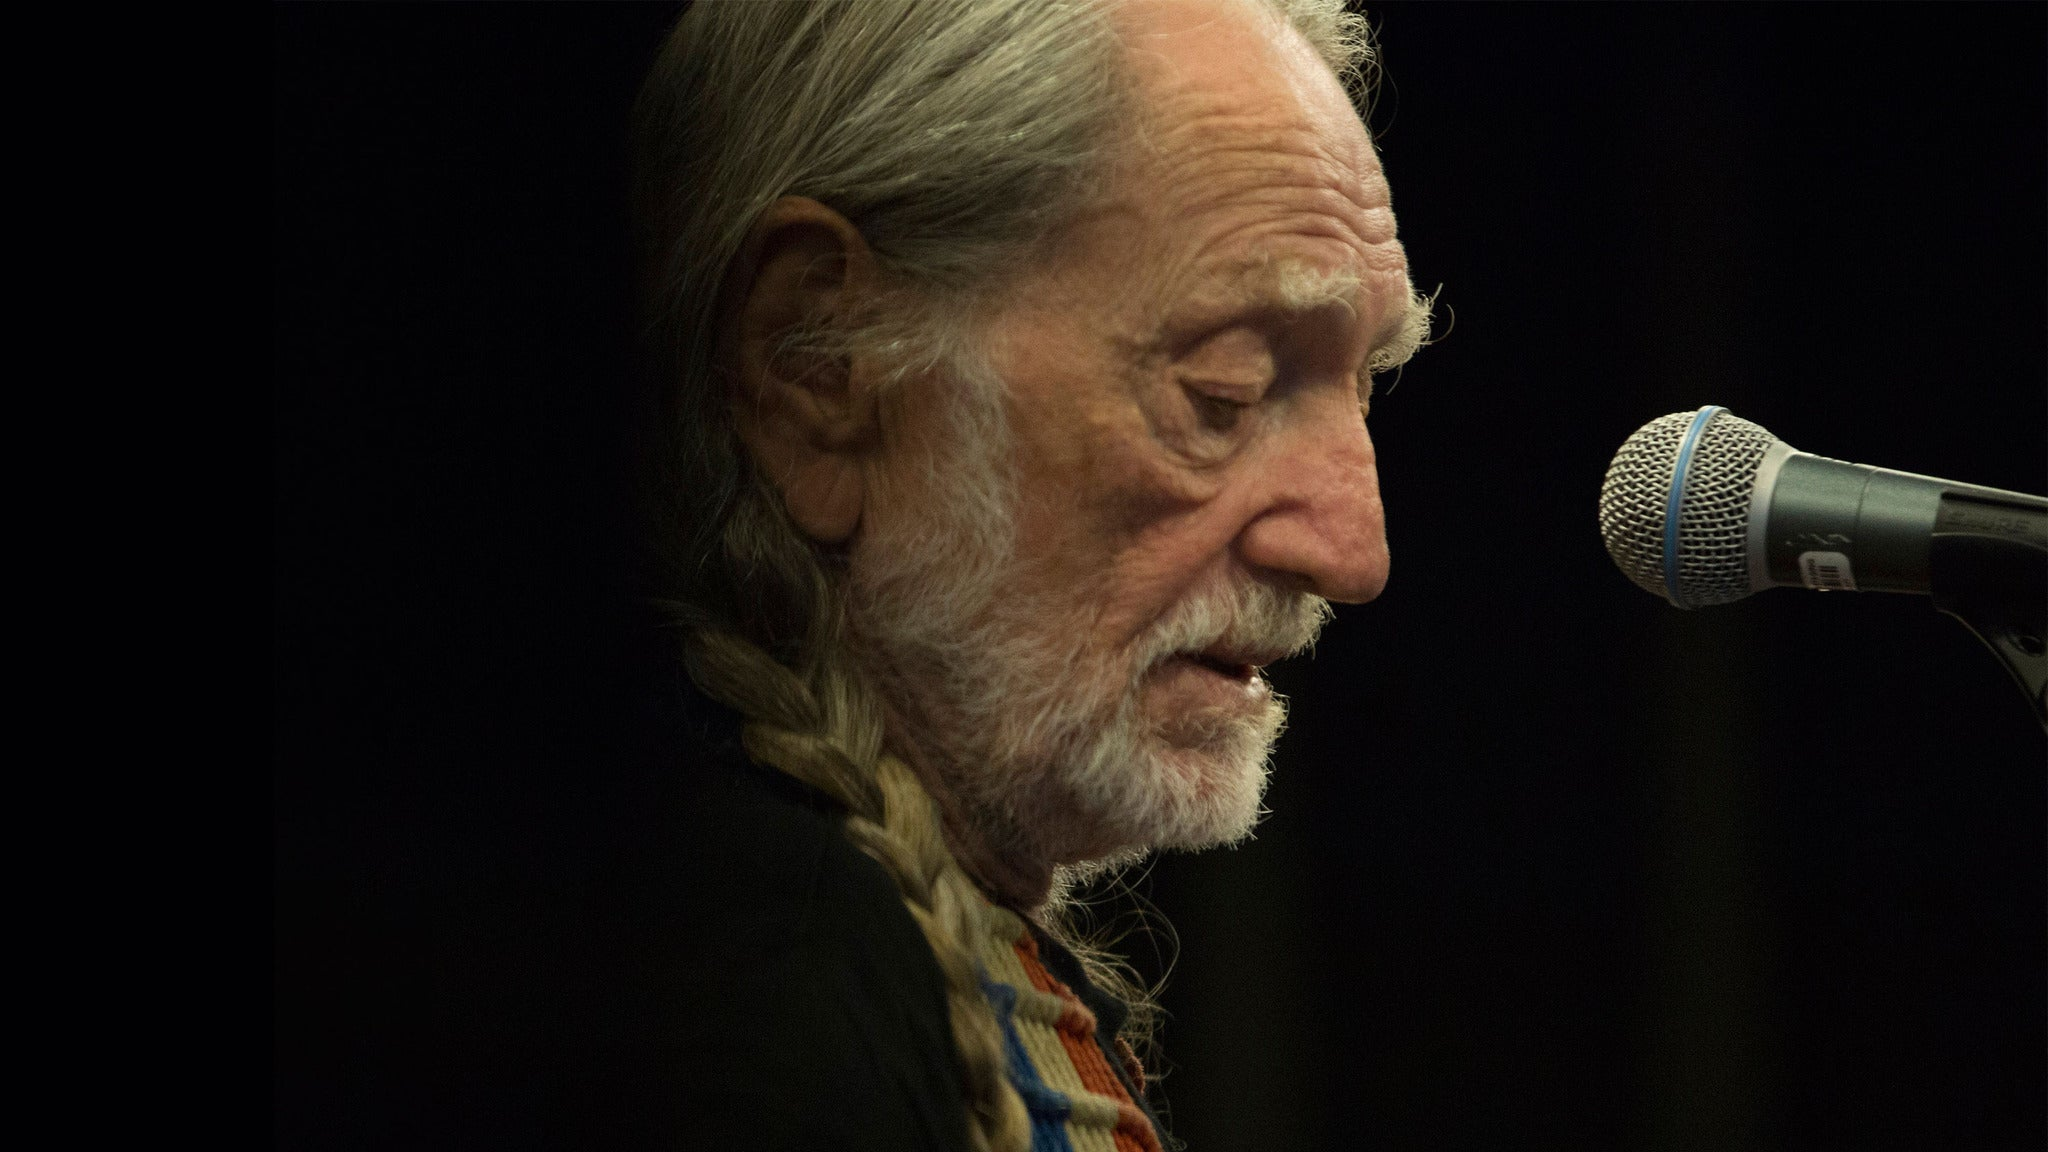 Willie Nelson & Family at Macon City Auditorium